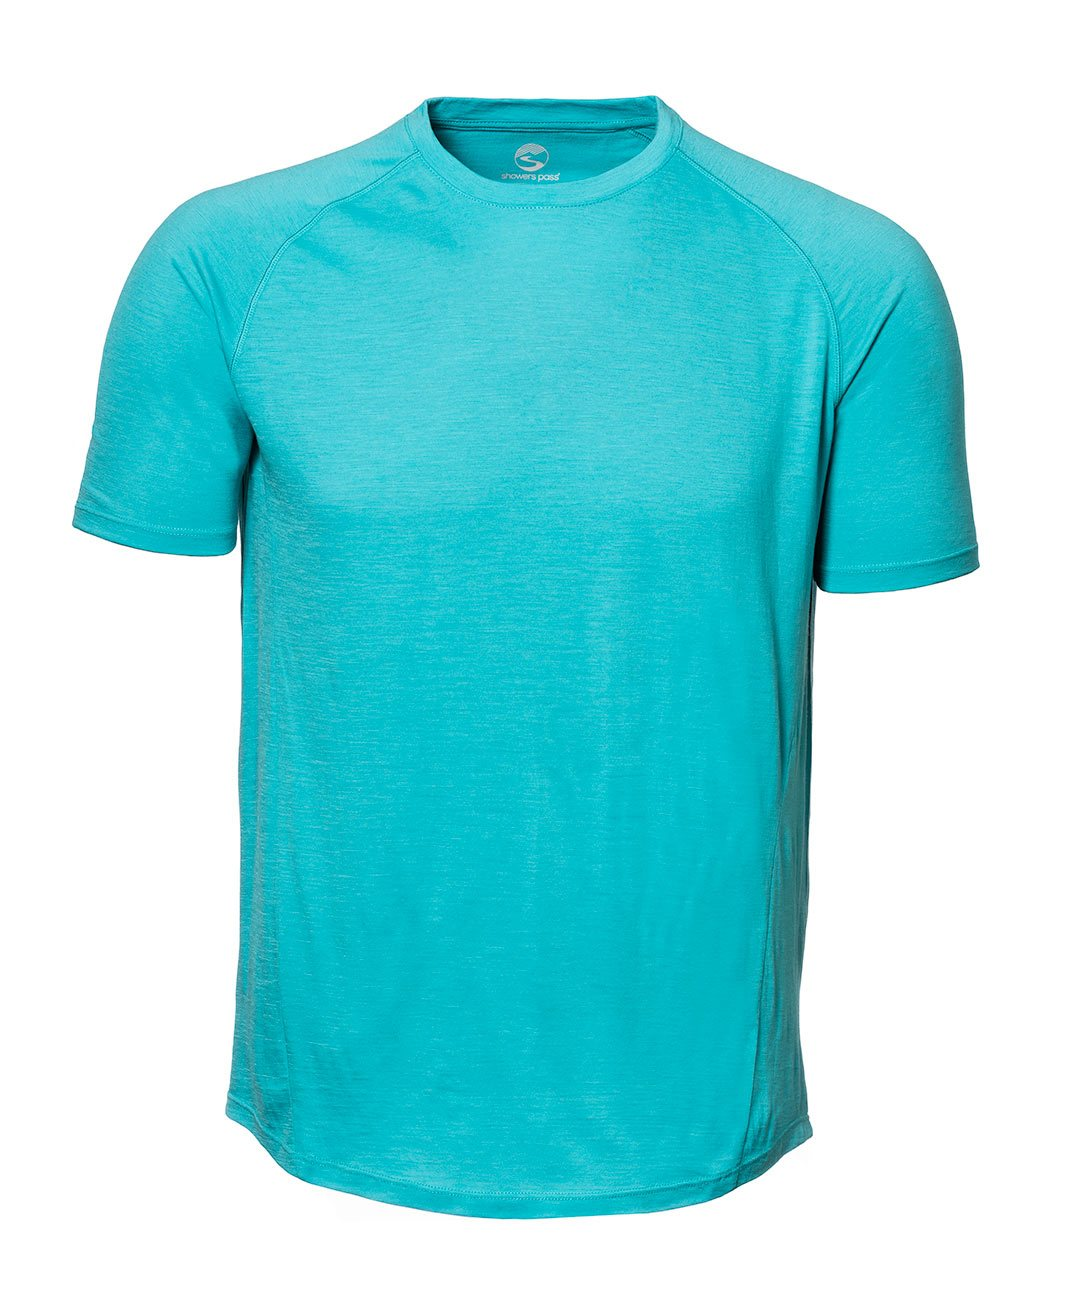 Men's Apex Merino Tech T-Shirt